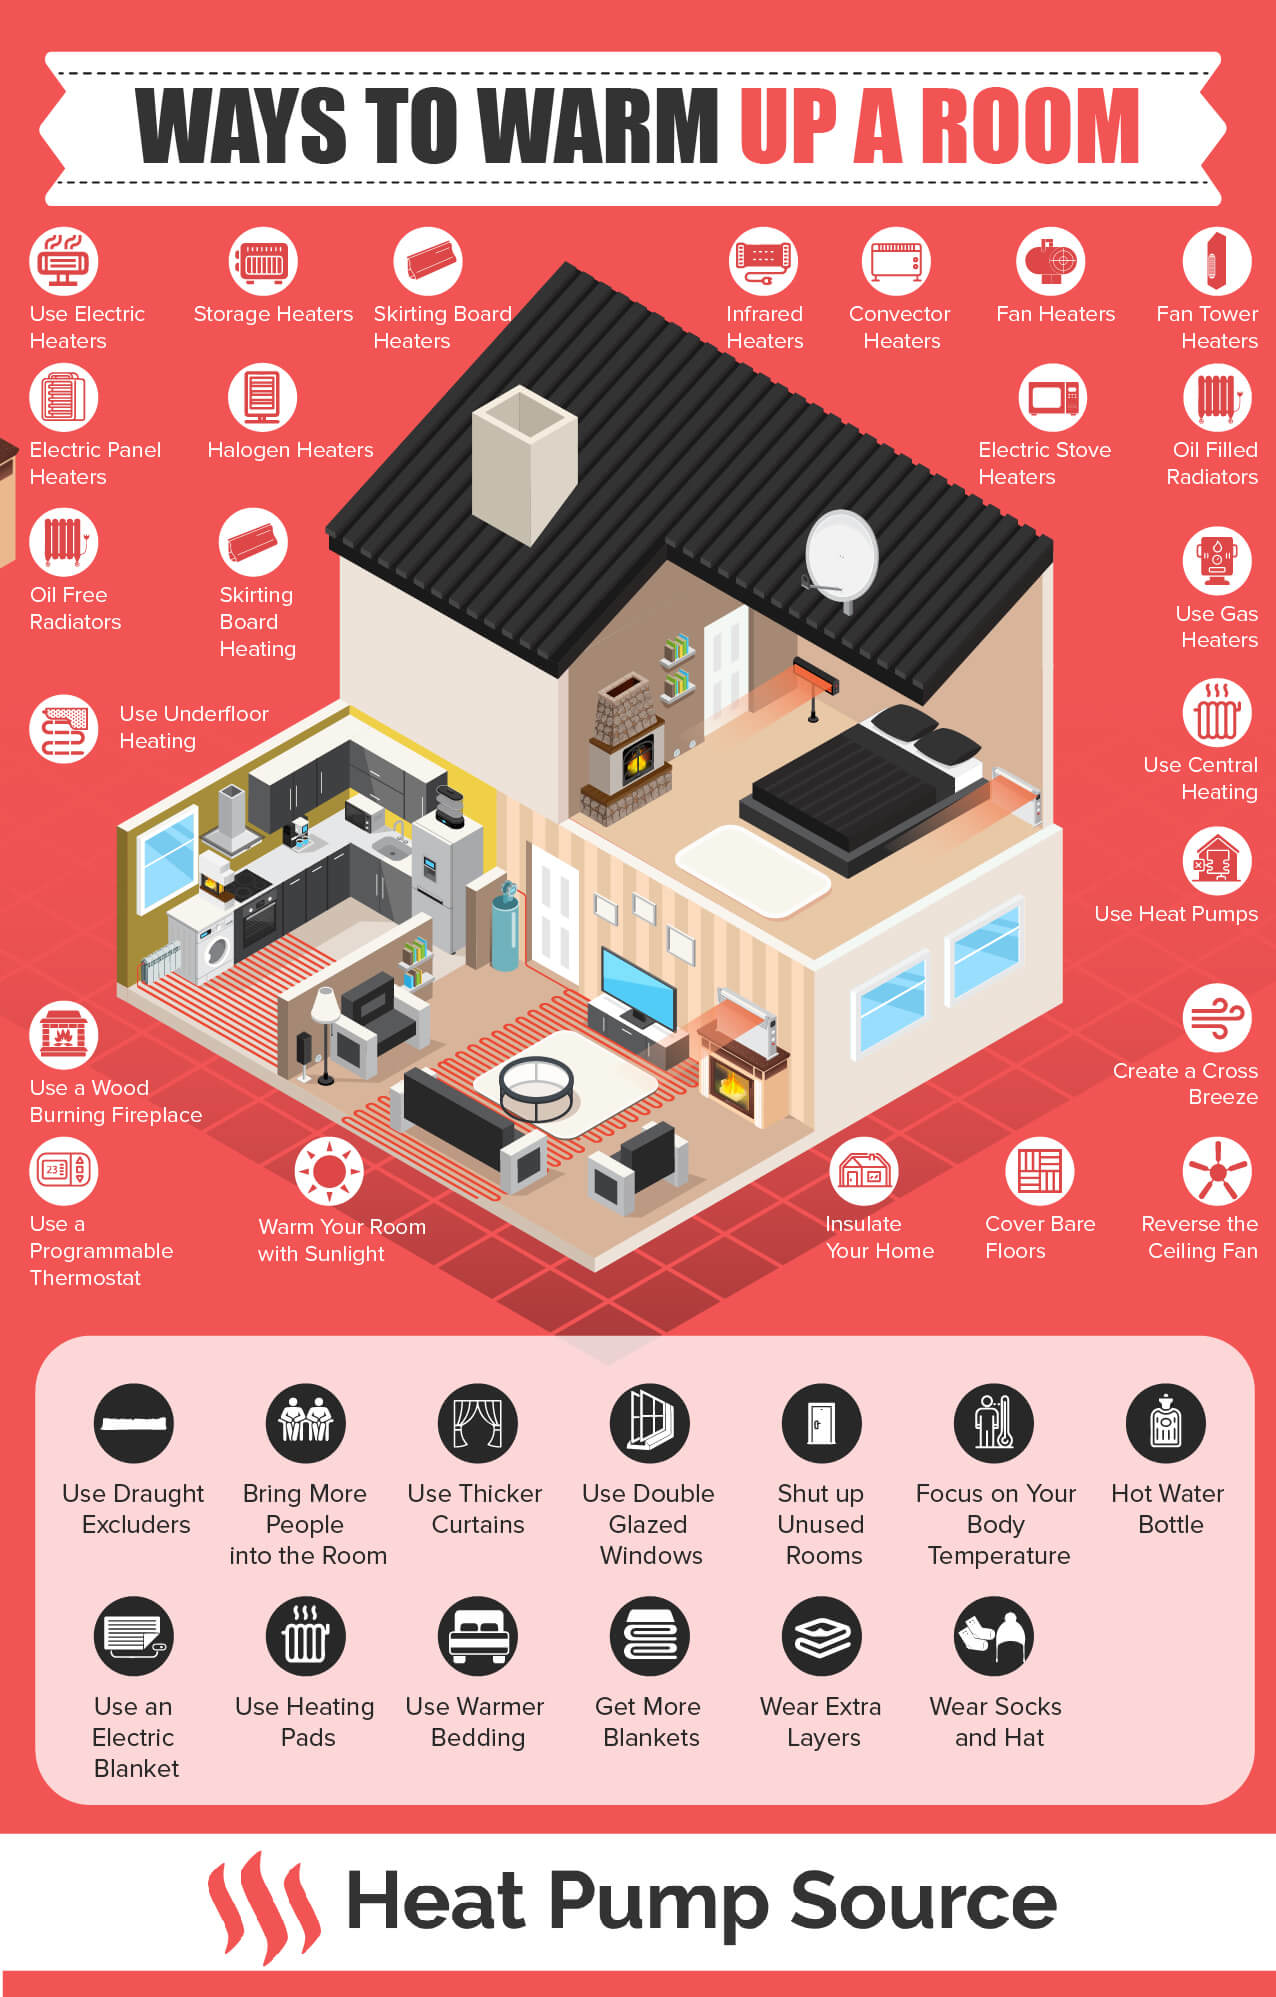 Ways to Warm Up a Room Infographic